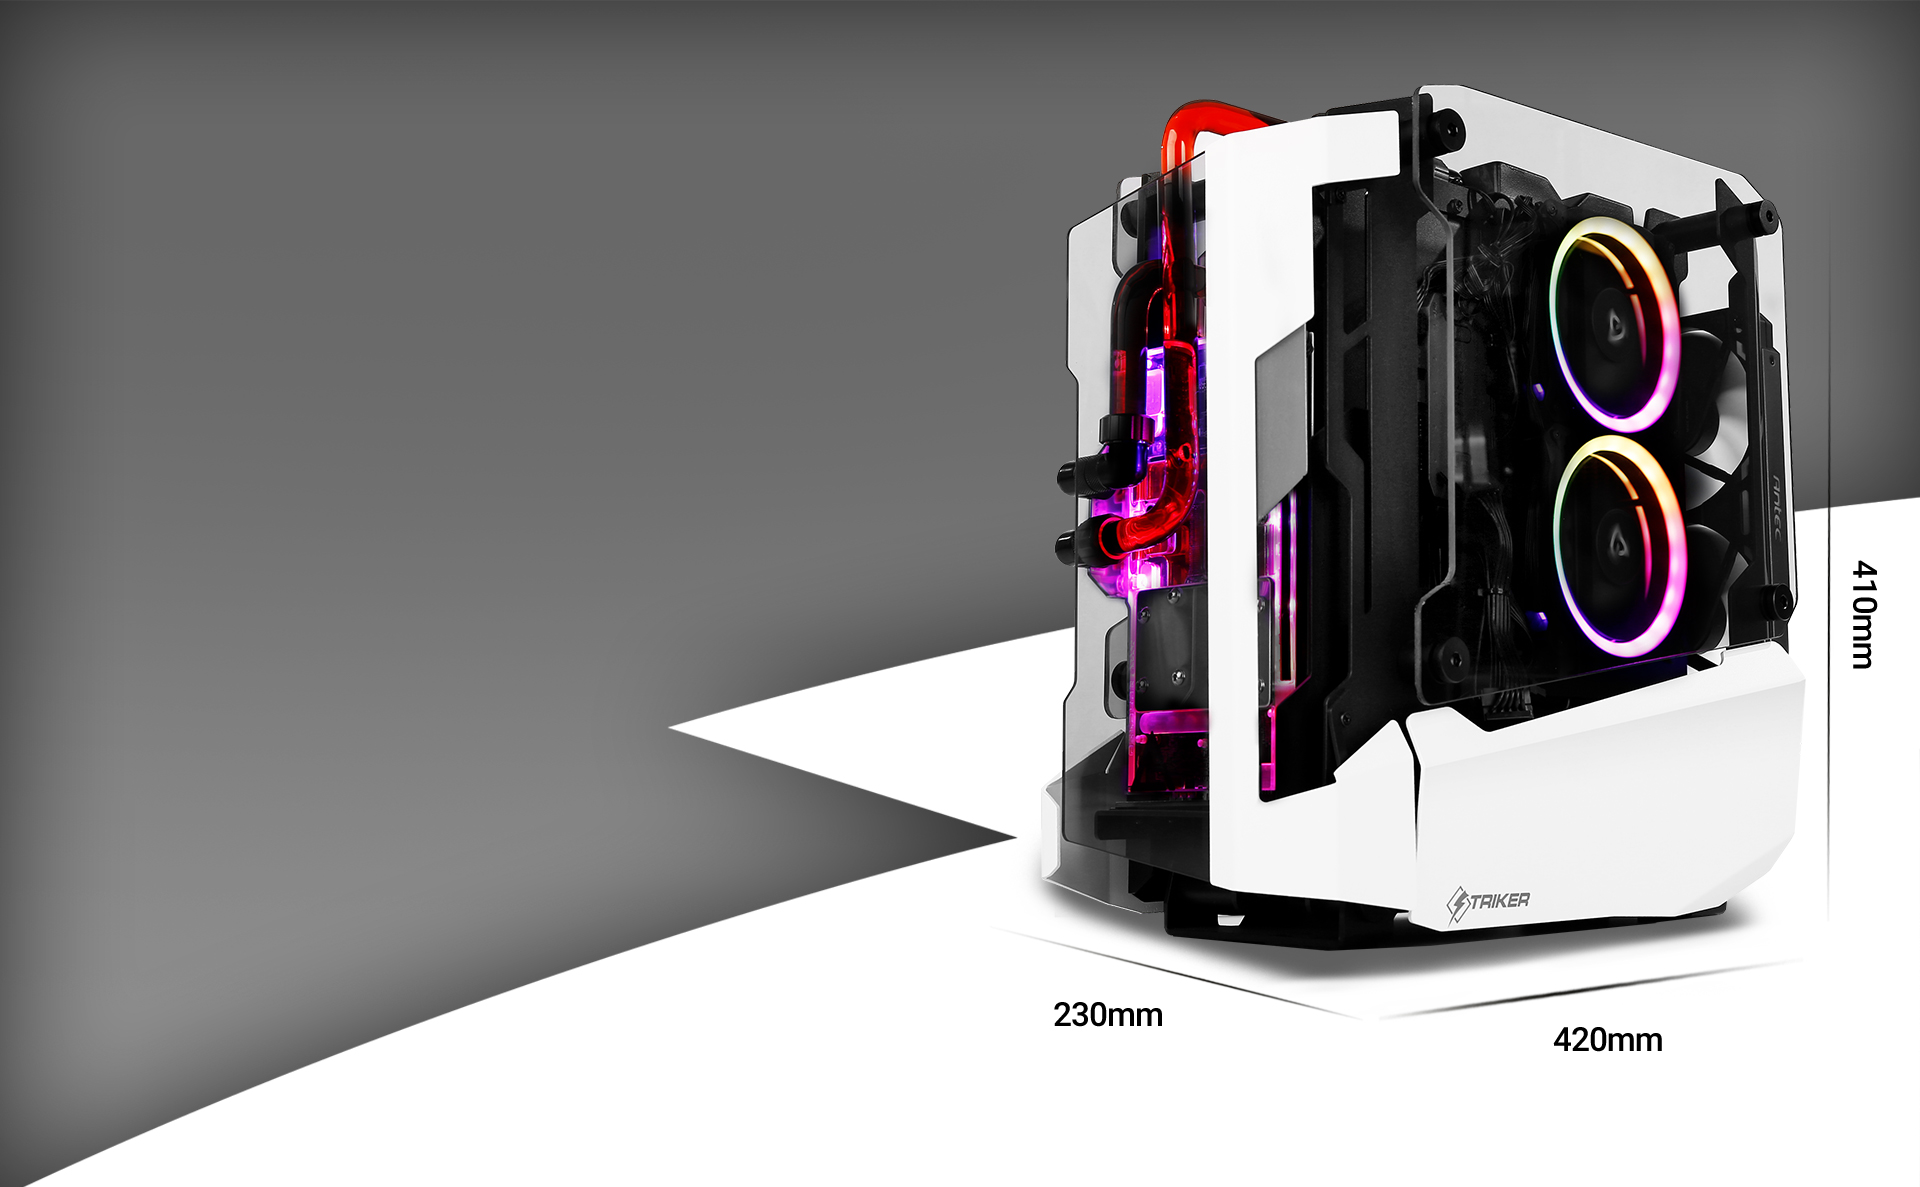 Antec STRIKER Aluminum and Steel ITX Computer Case Length, width and height